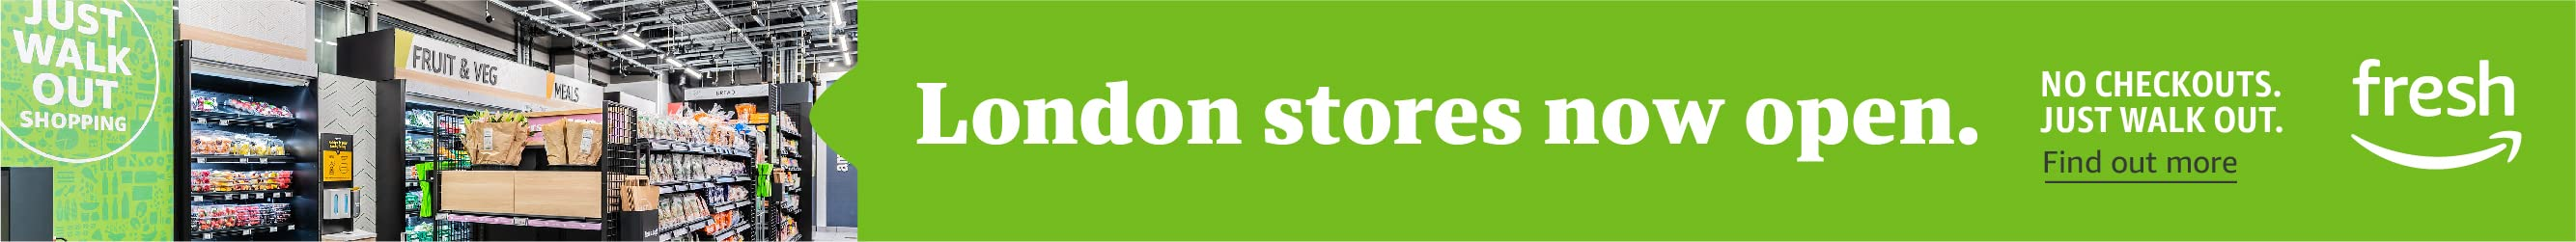 London stores now open. No checkouts. Just Walk Out. Find out more. Fresh.